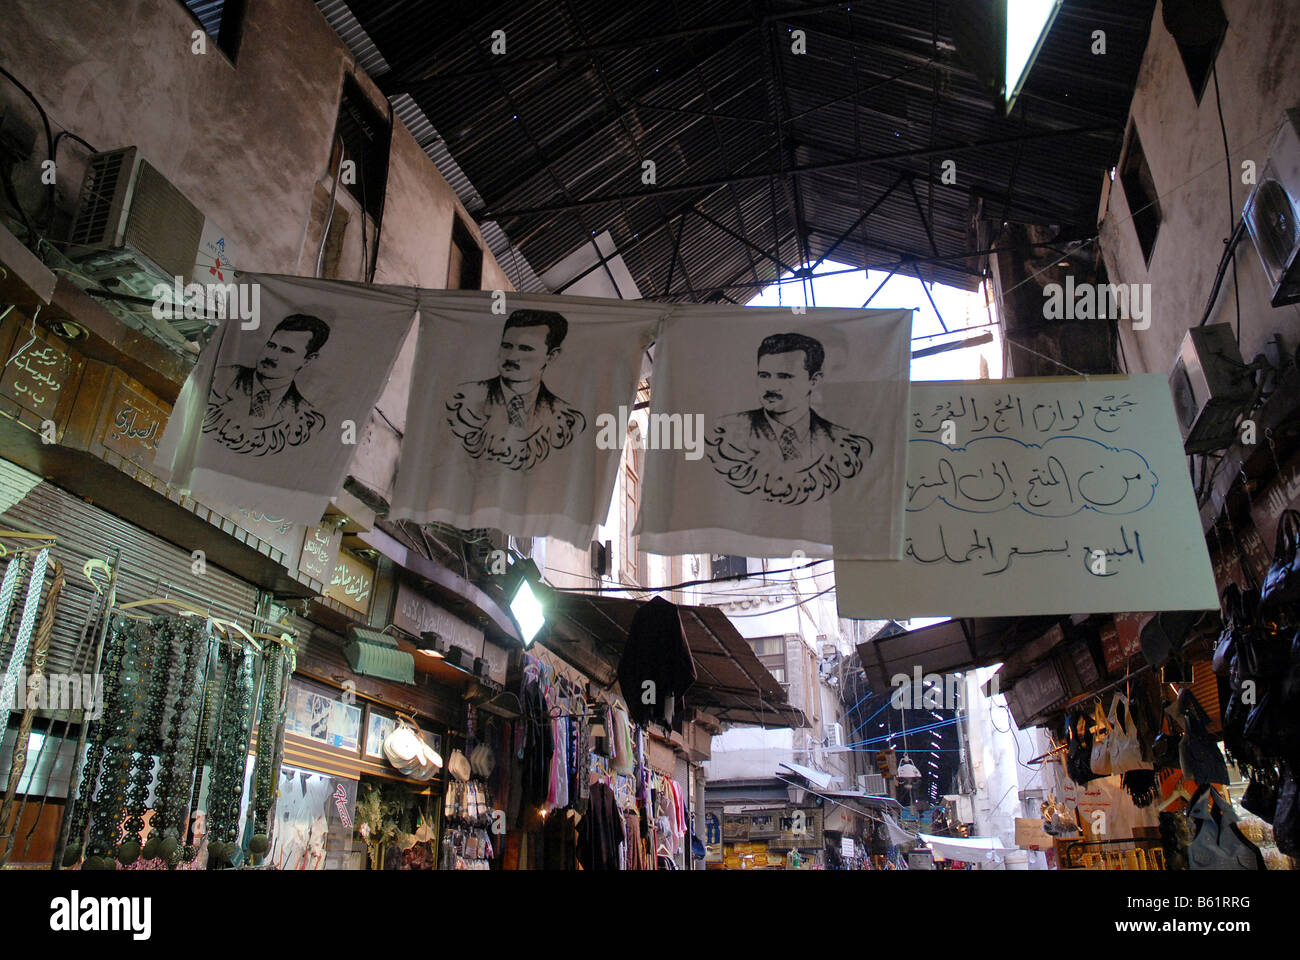 Flags with portrait of president Baschar-al-Assad in the souk in the historic city centre of Damascus, Syria, Middle - Stock Image